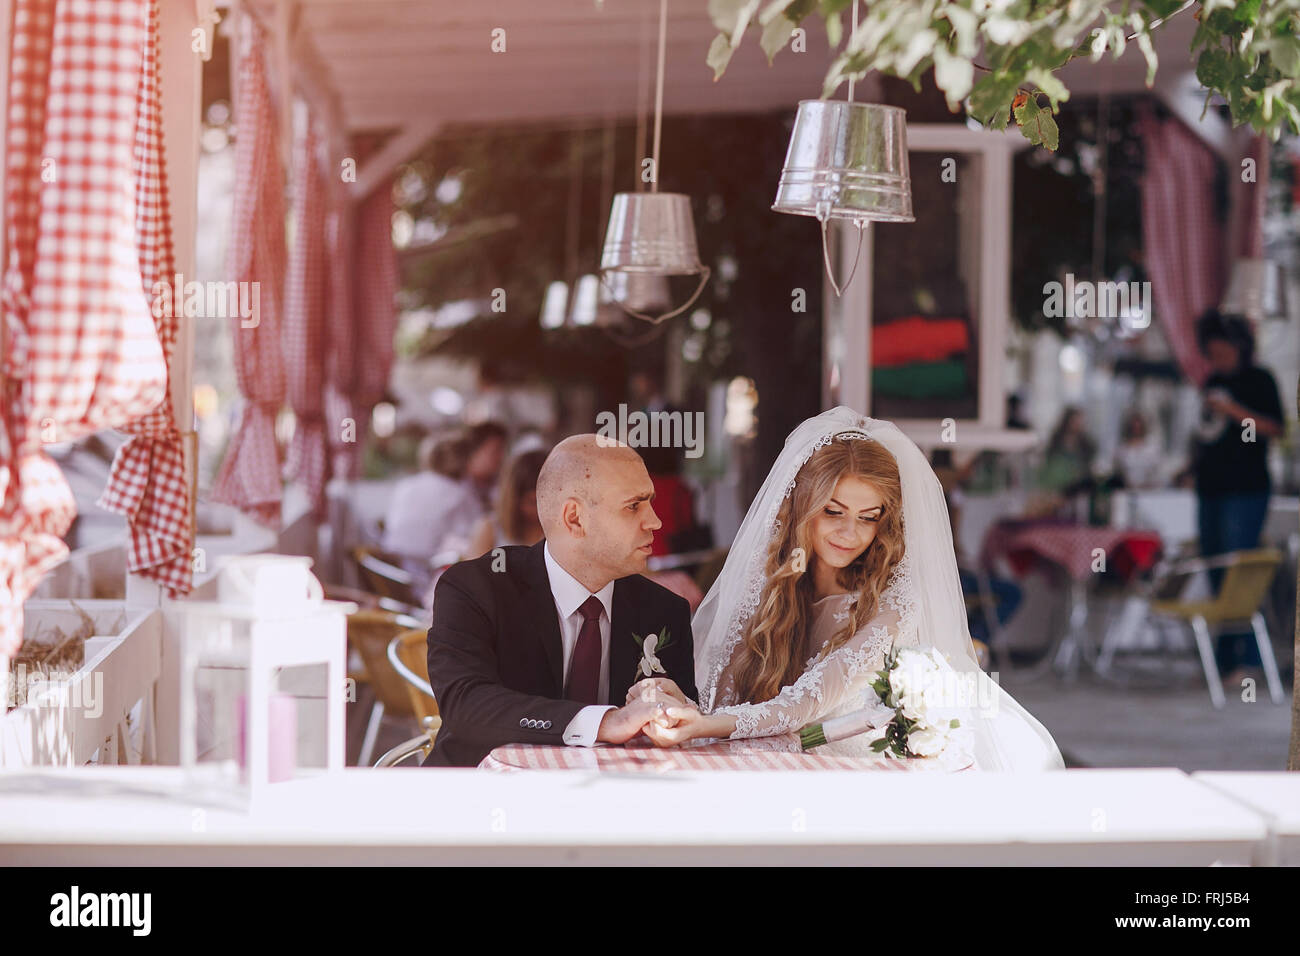 wedding day HD - Stock Image